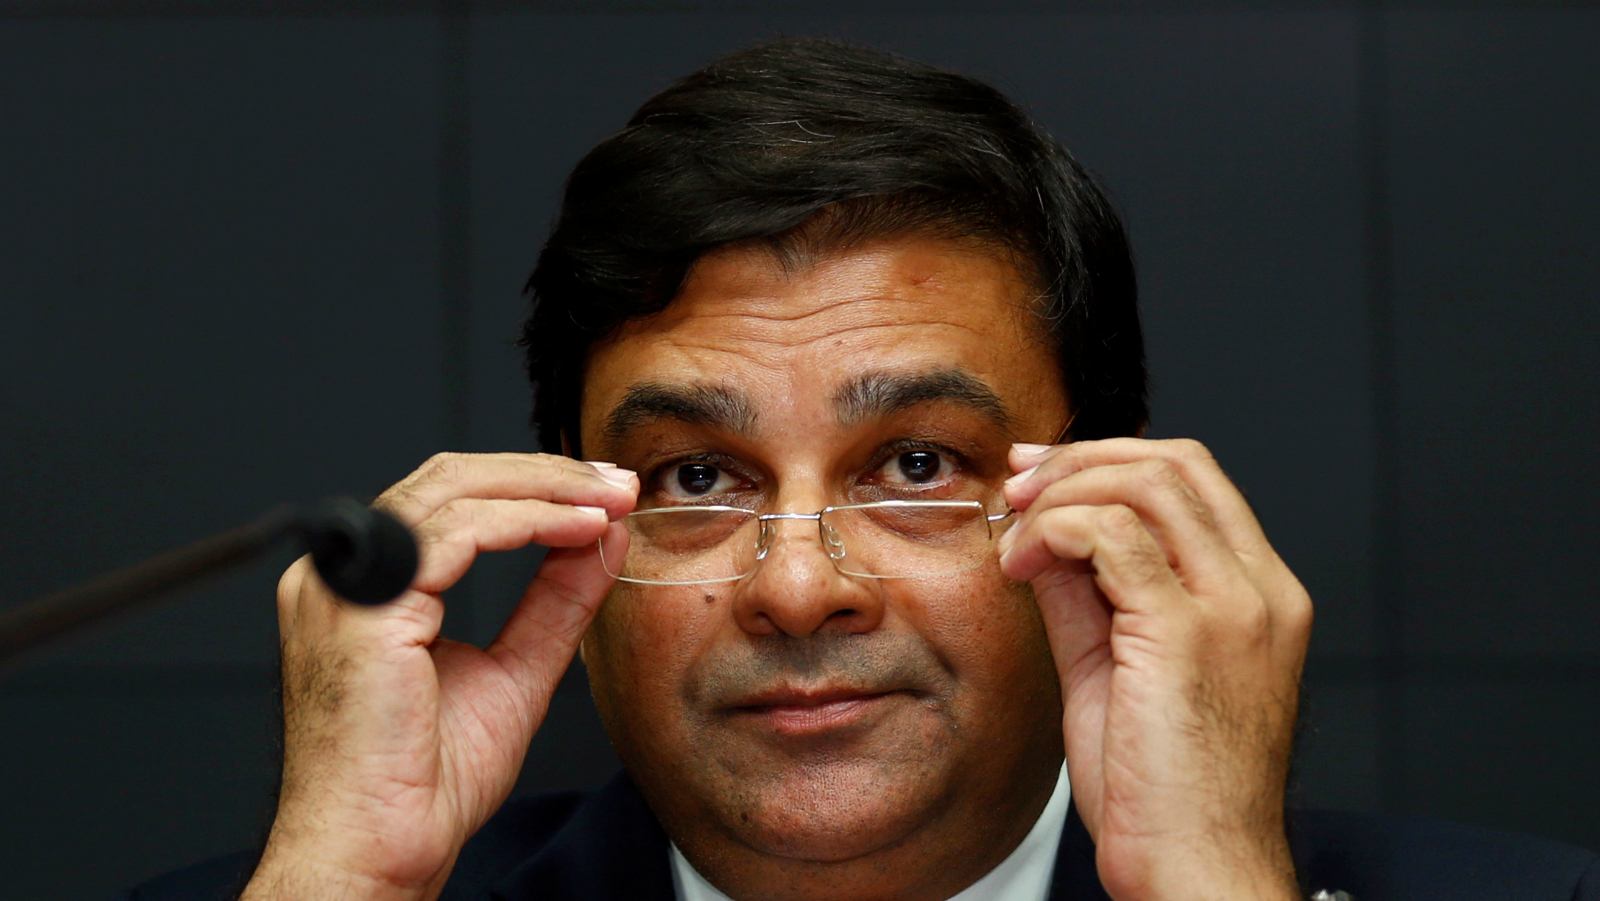 The Reserve Bank of India (RBI) Governor Urjit Patel attends a news conference after the bi-monthly monetary policy review in Mumbai, India, October 4, 2016.